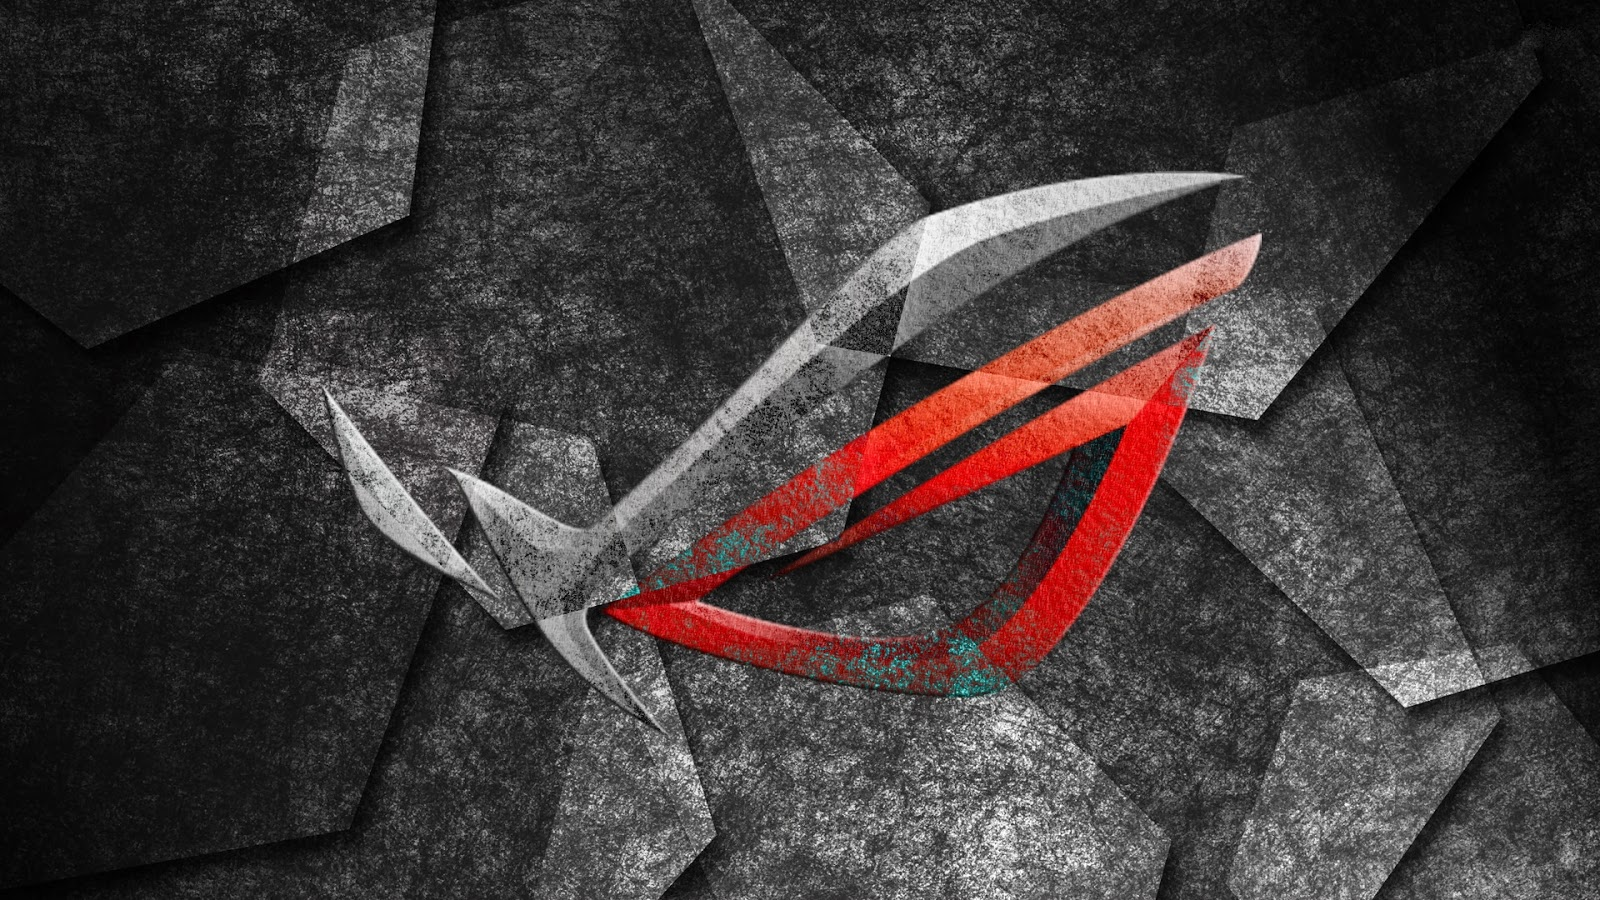 Asus ROG Republic of Gamers Logo Brand Background HD Wallpaper i04 1600x900